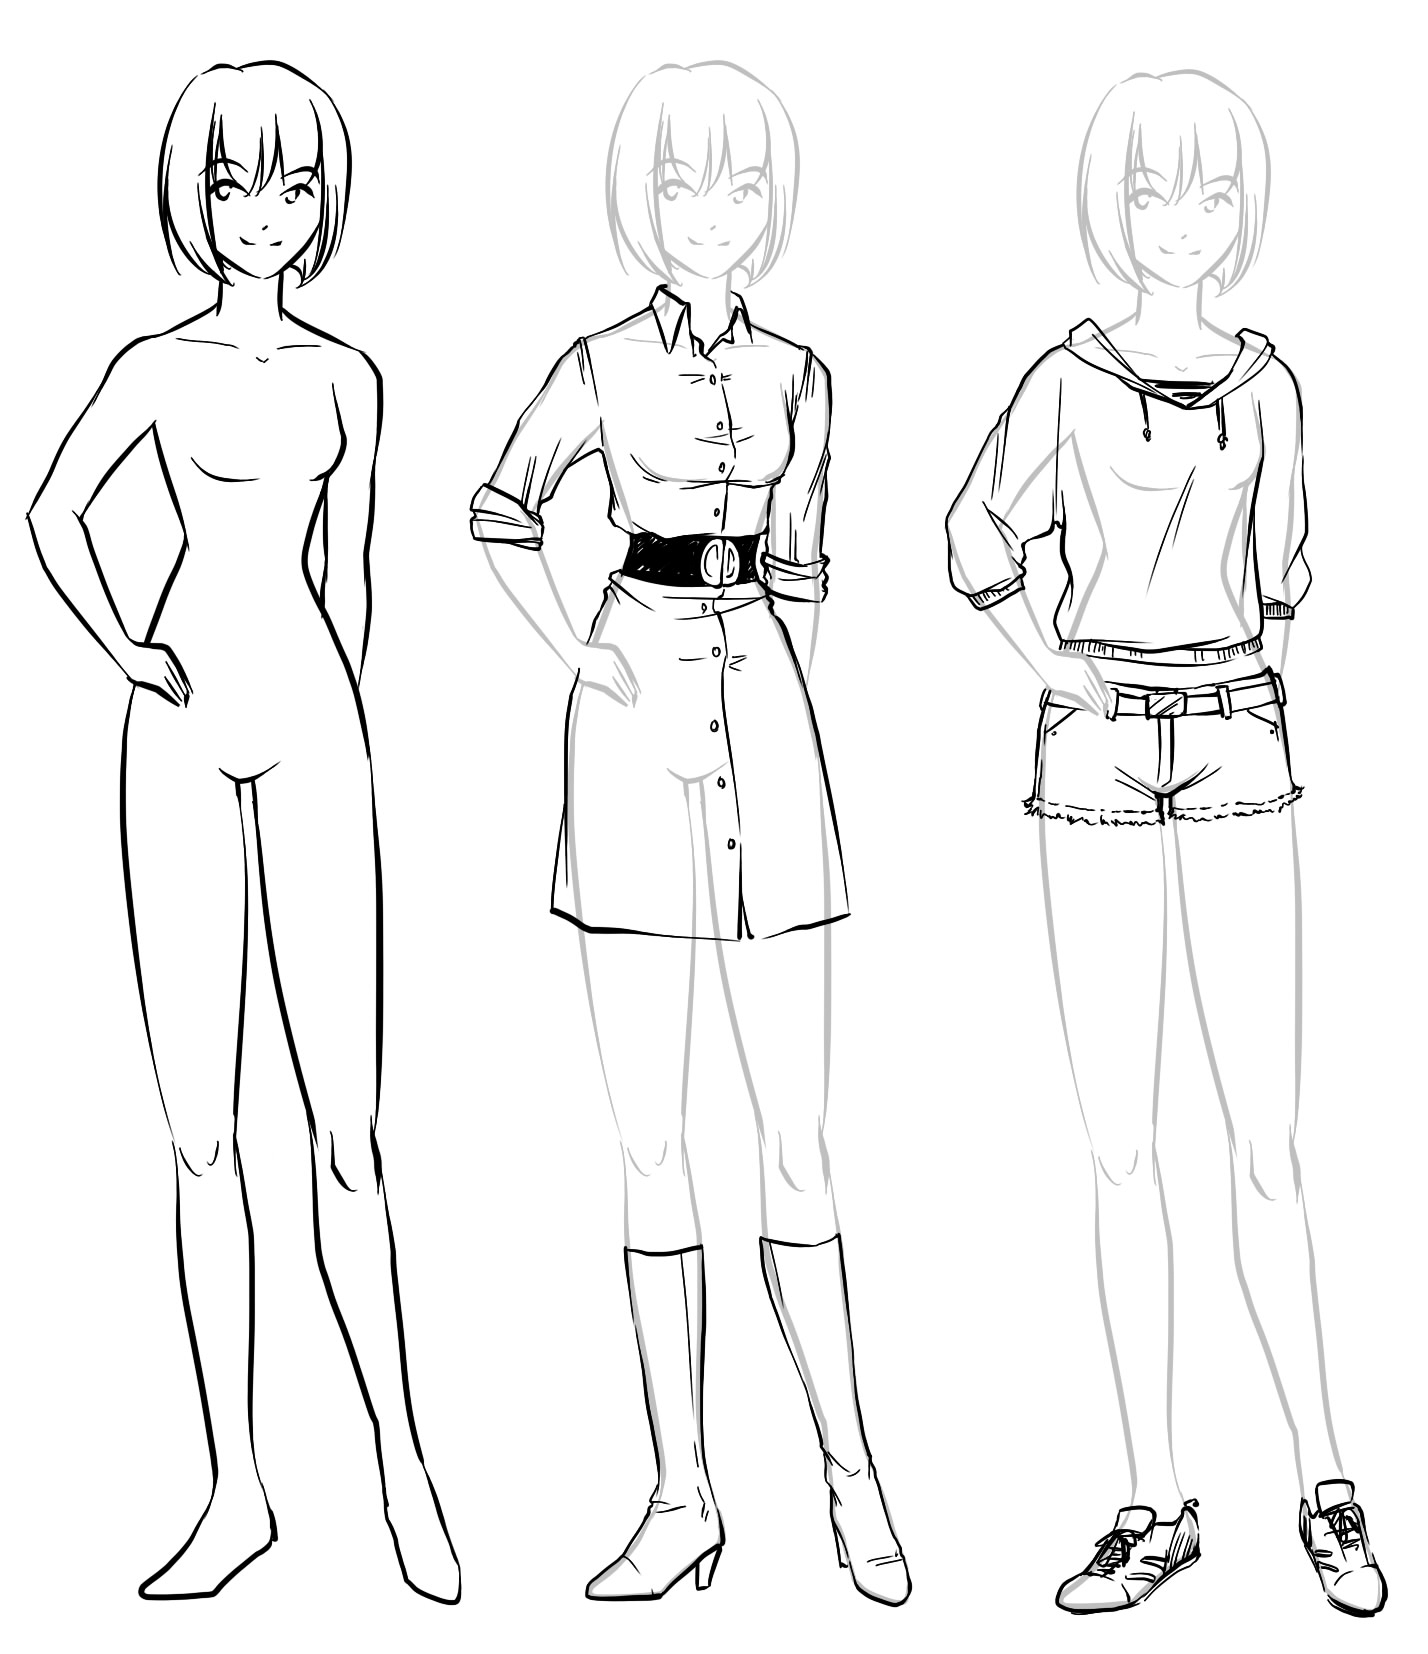 1428x1654 How To Draw A Female Body Anime Anime Girl Full Body Drawing